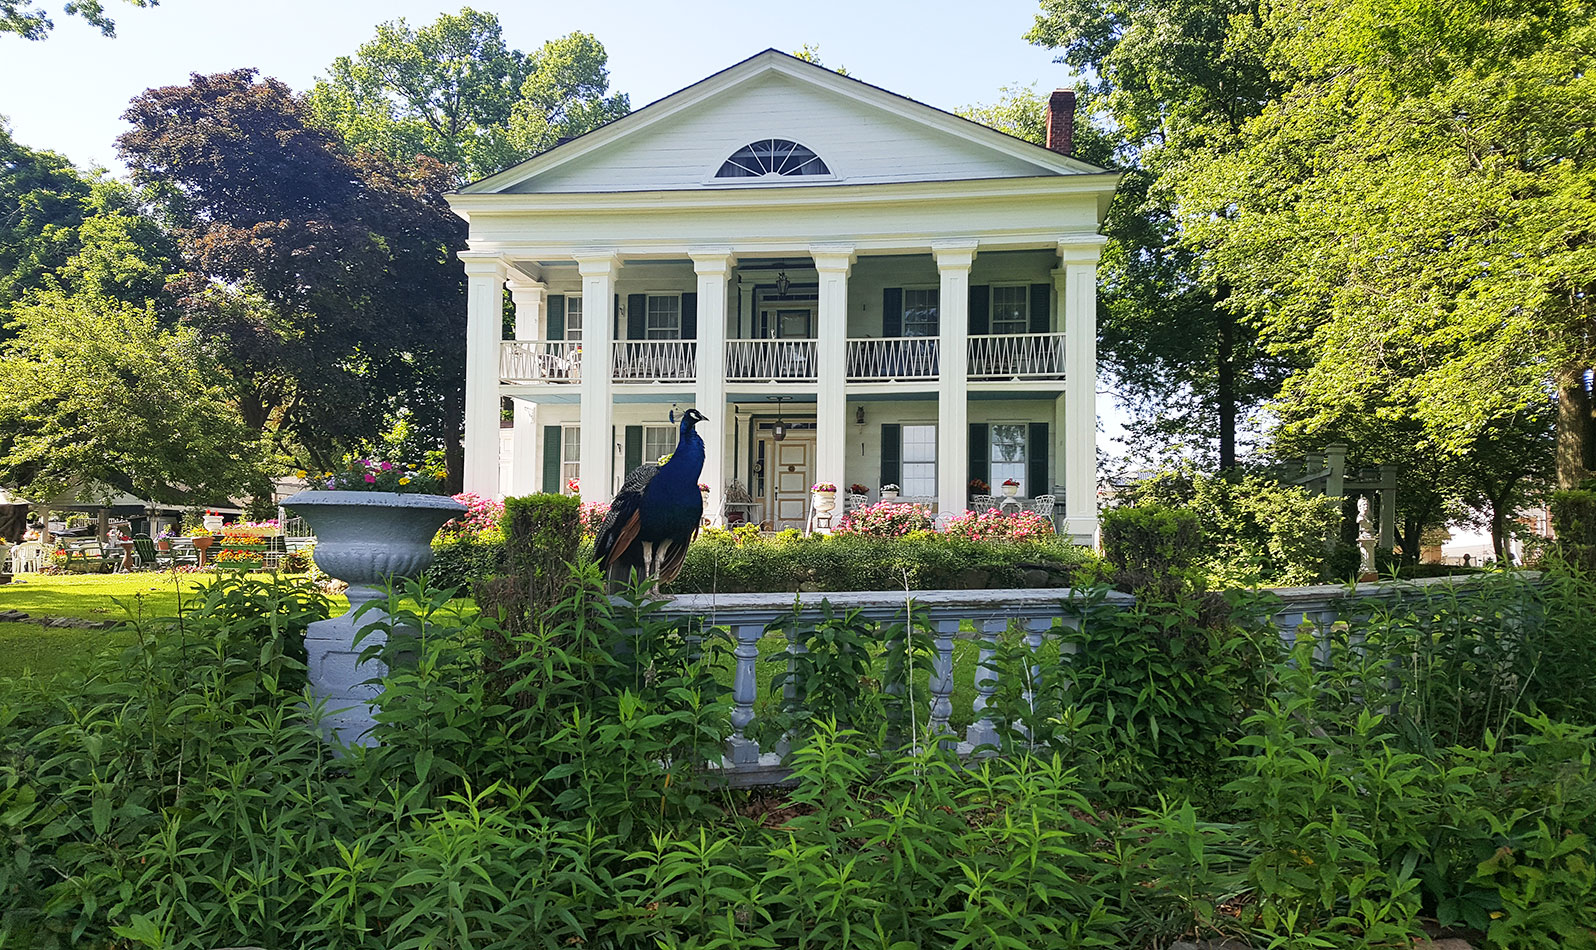 Head up Seguine Avenue to this 19th-century beauty with peacocks on the lawn. Plan ahead: make an appointment for a tour of this 18-room historic house!